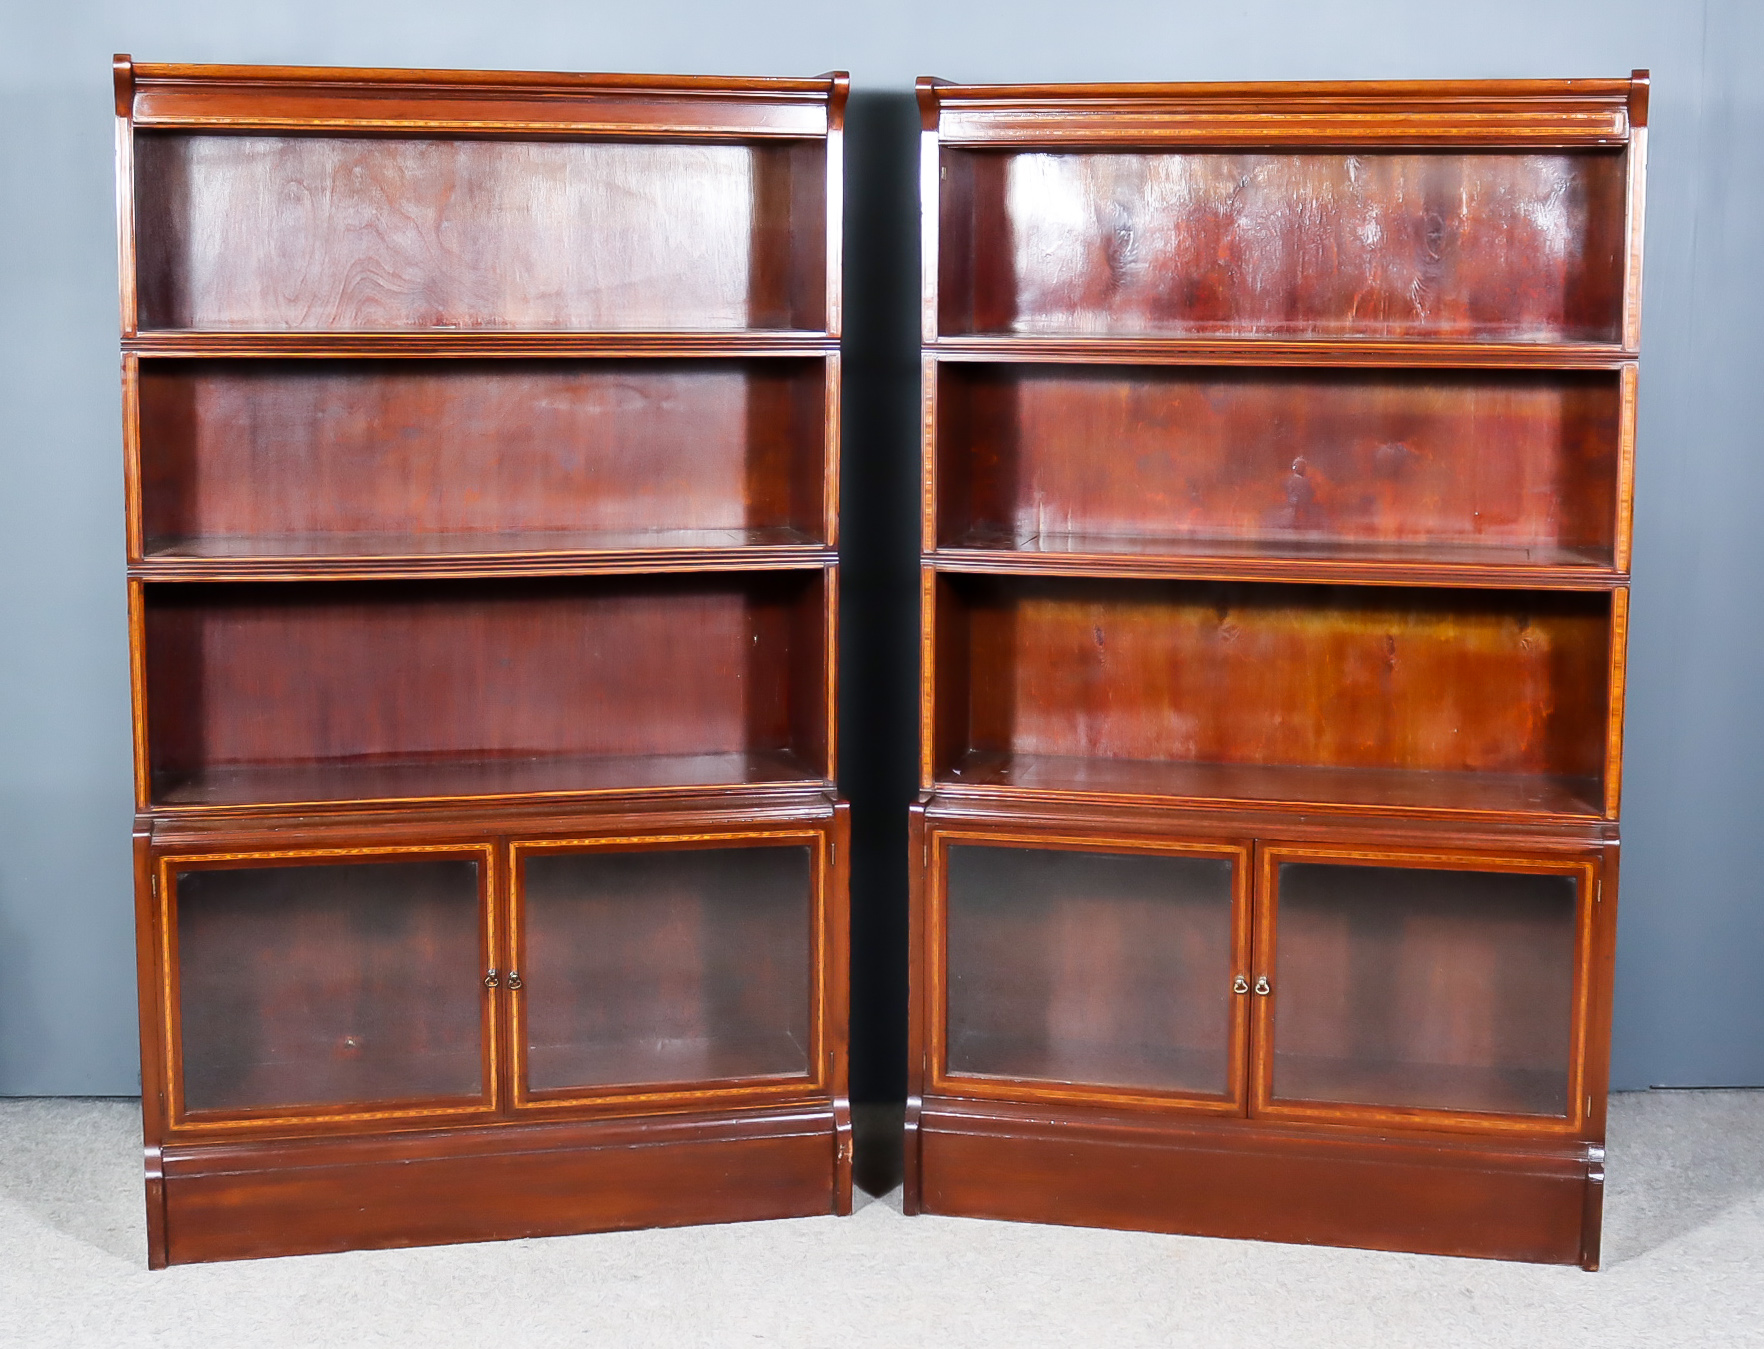 A Pair of Early 20th Century Mahogany Bookcases, designed and manufactured by William Baker & Co. of